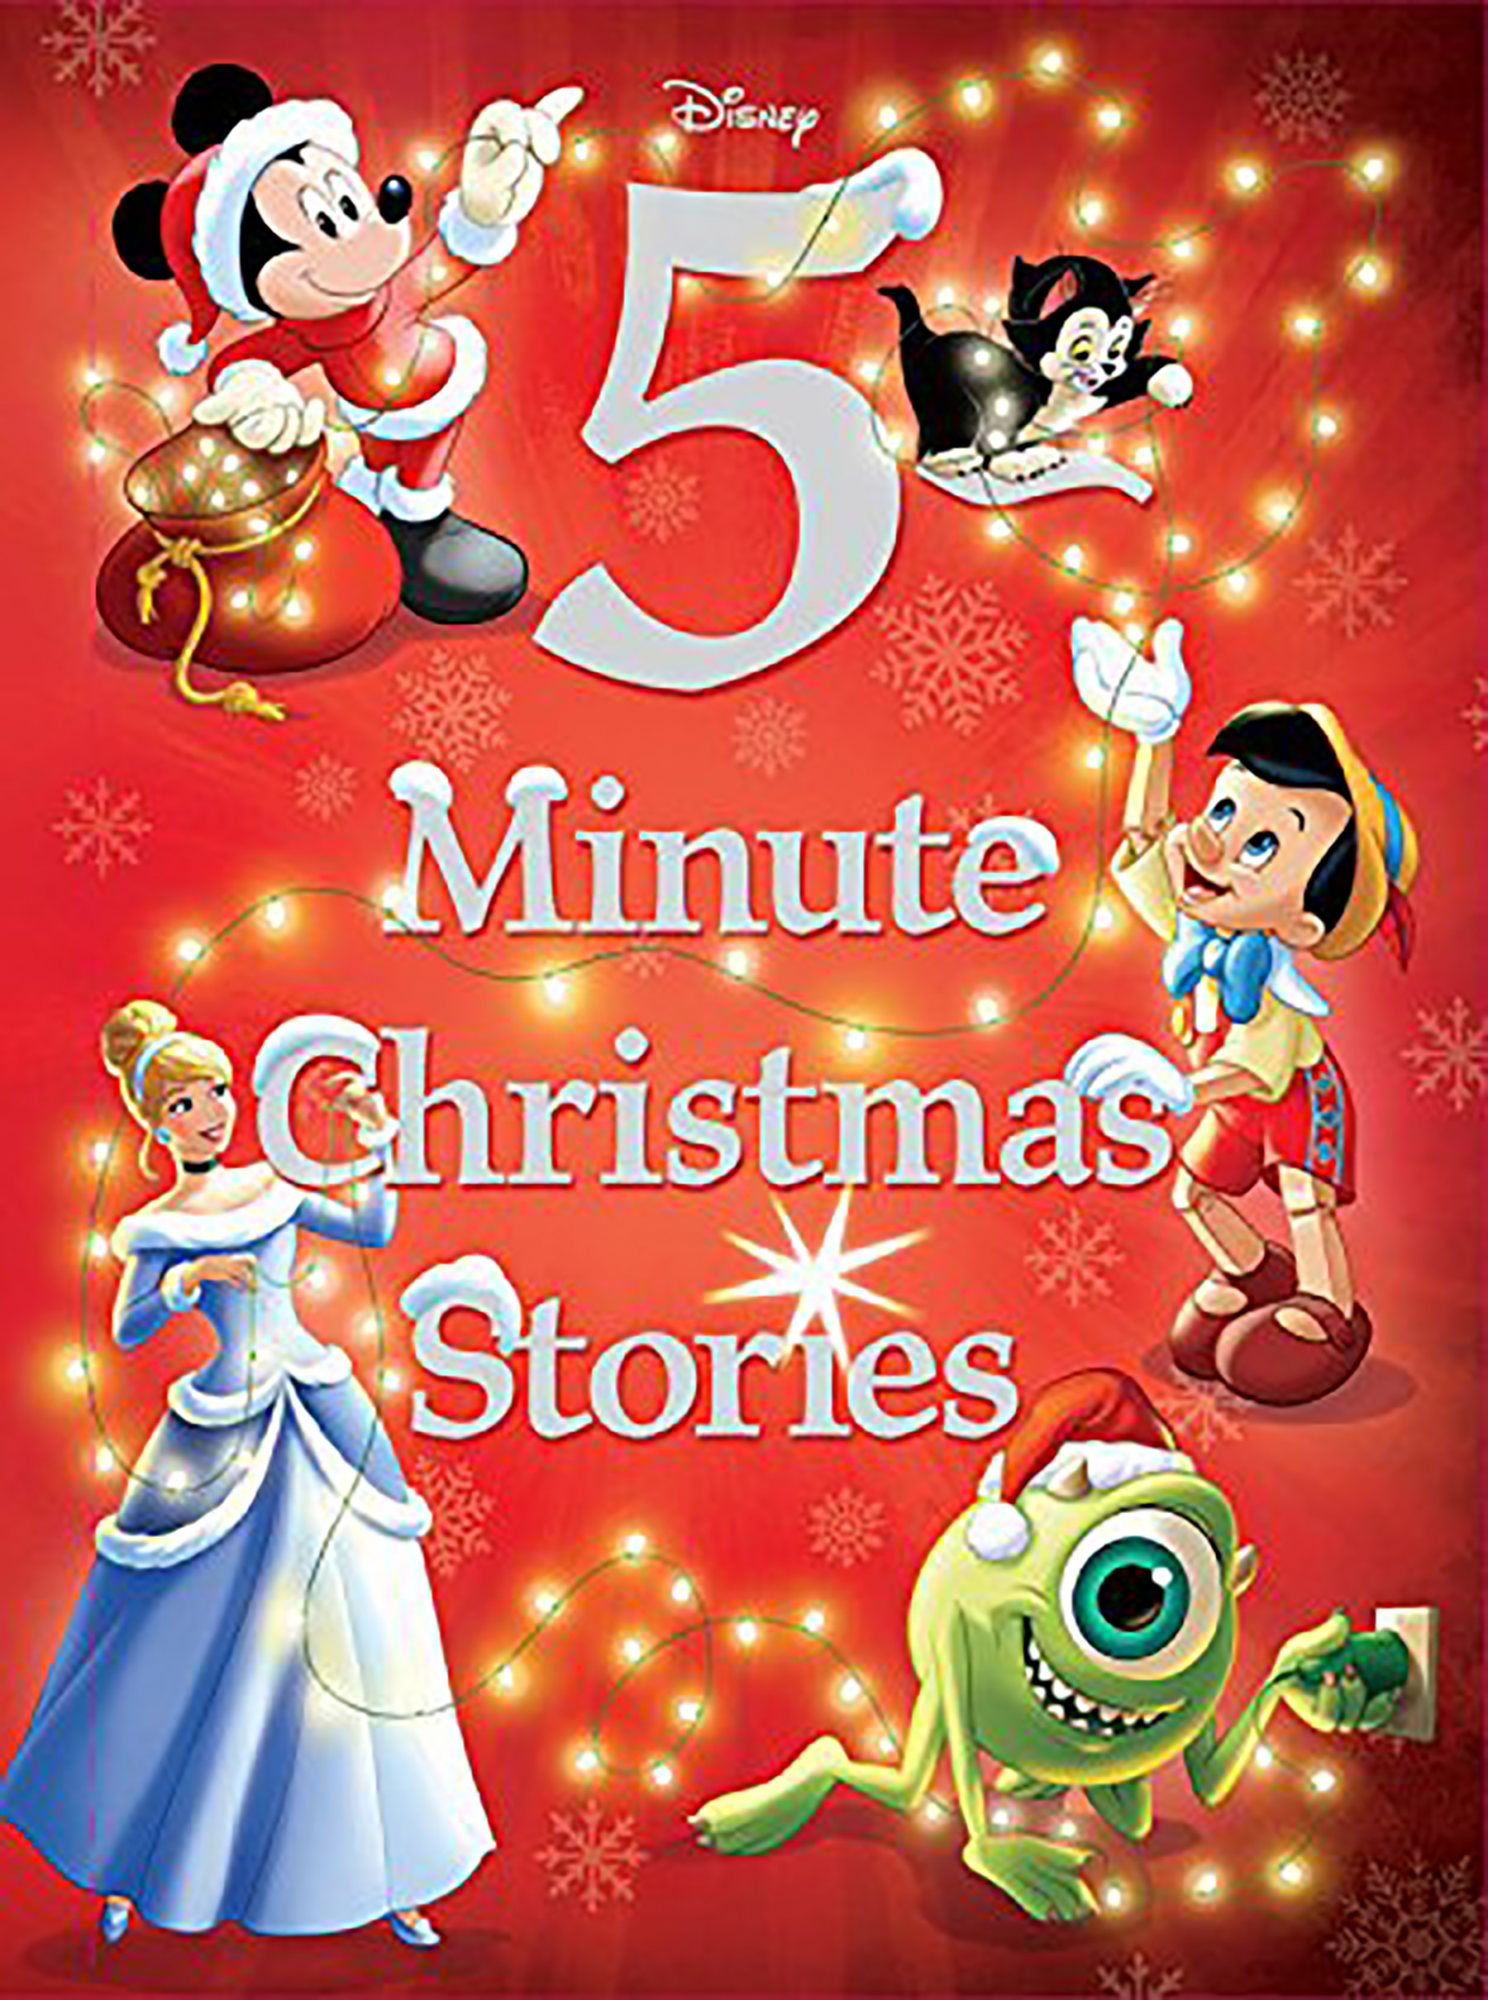 Disney holiday books